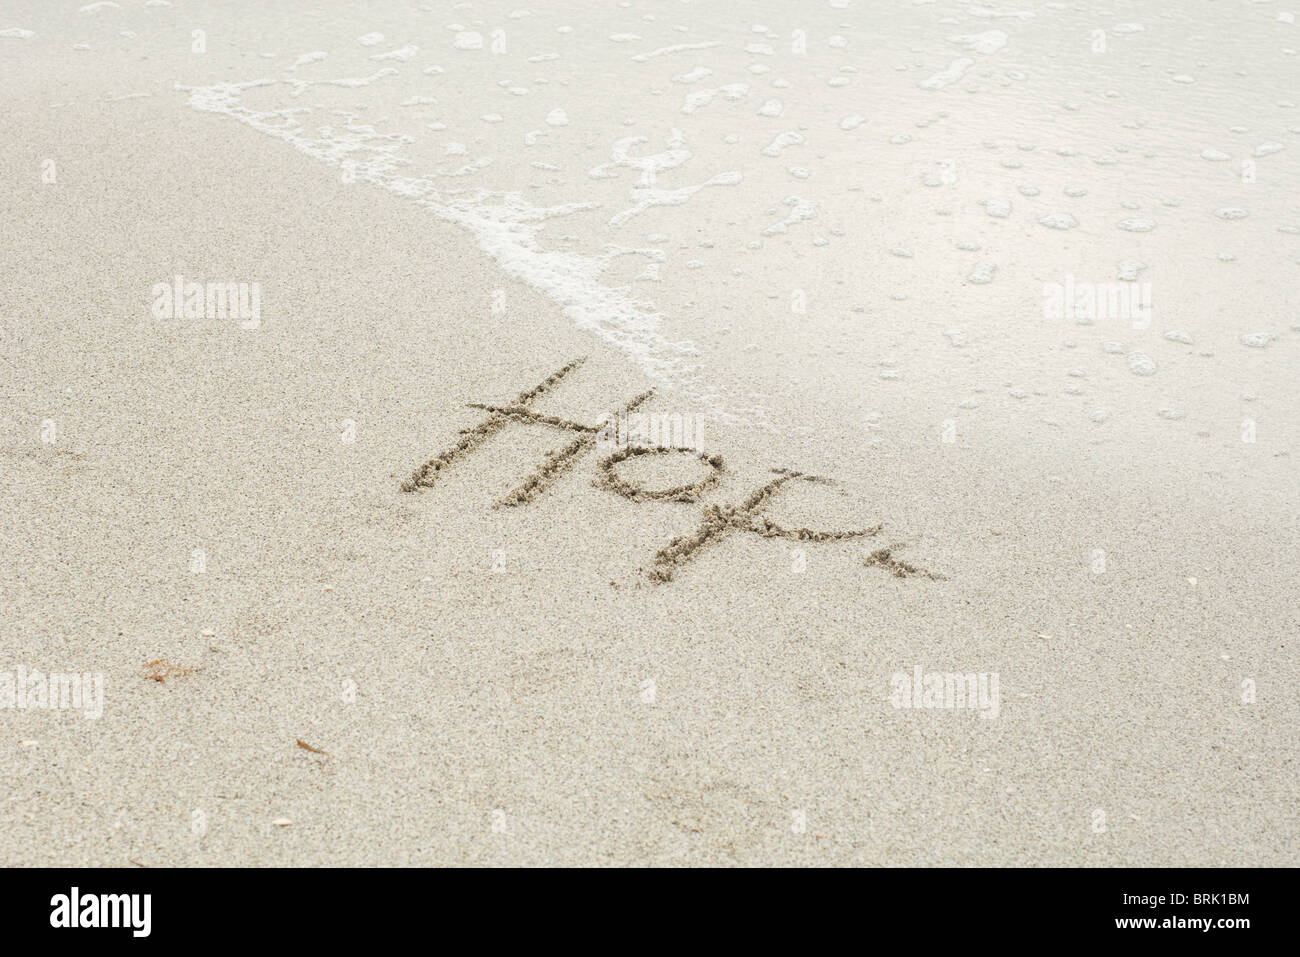 The word 'hope' written in the sand at the beach, partially washed away by the tide - Stock Image